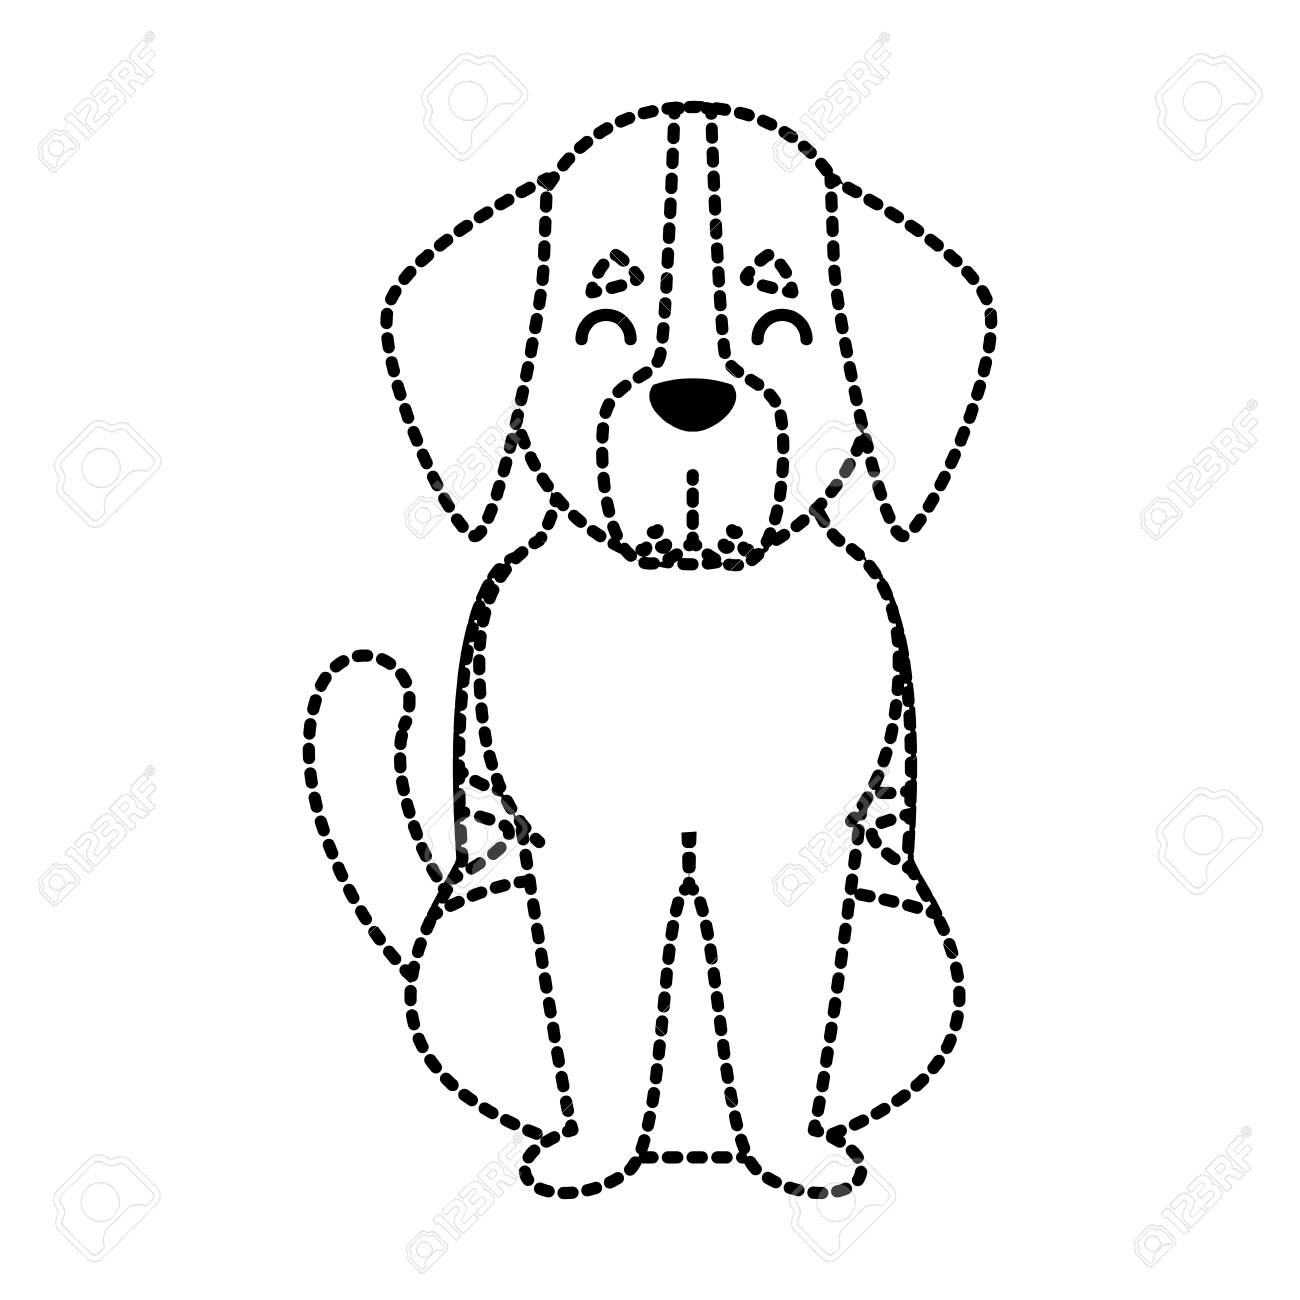 Cute Dog Cartoon Icon In Dotted Line Illustration Royalty Free ...